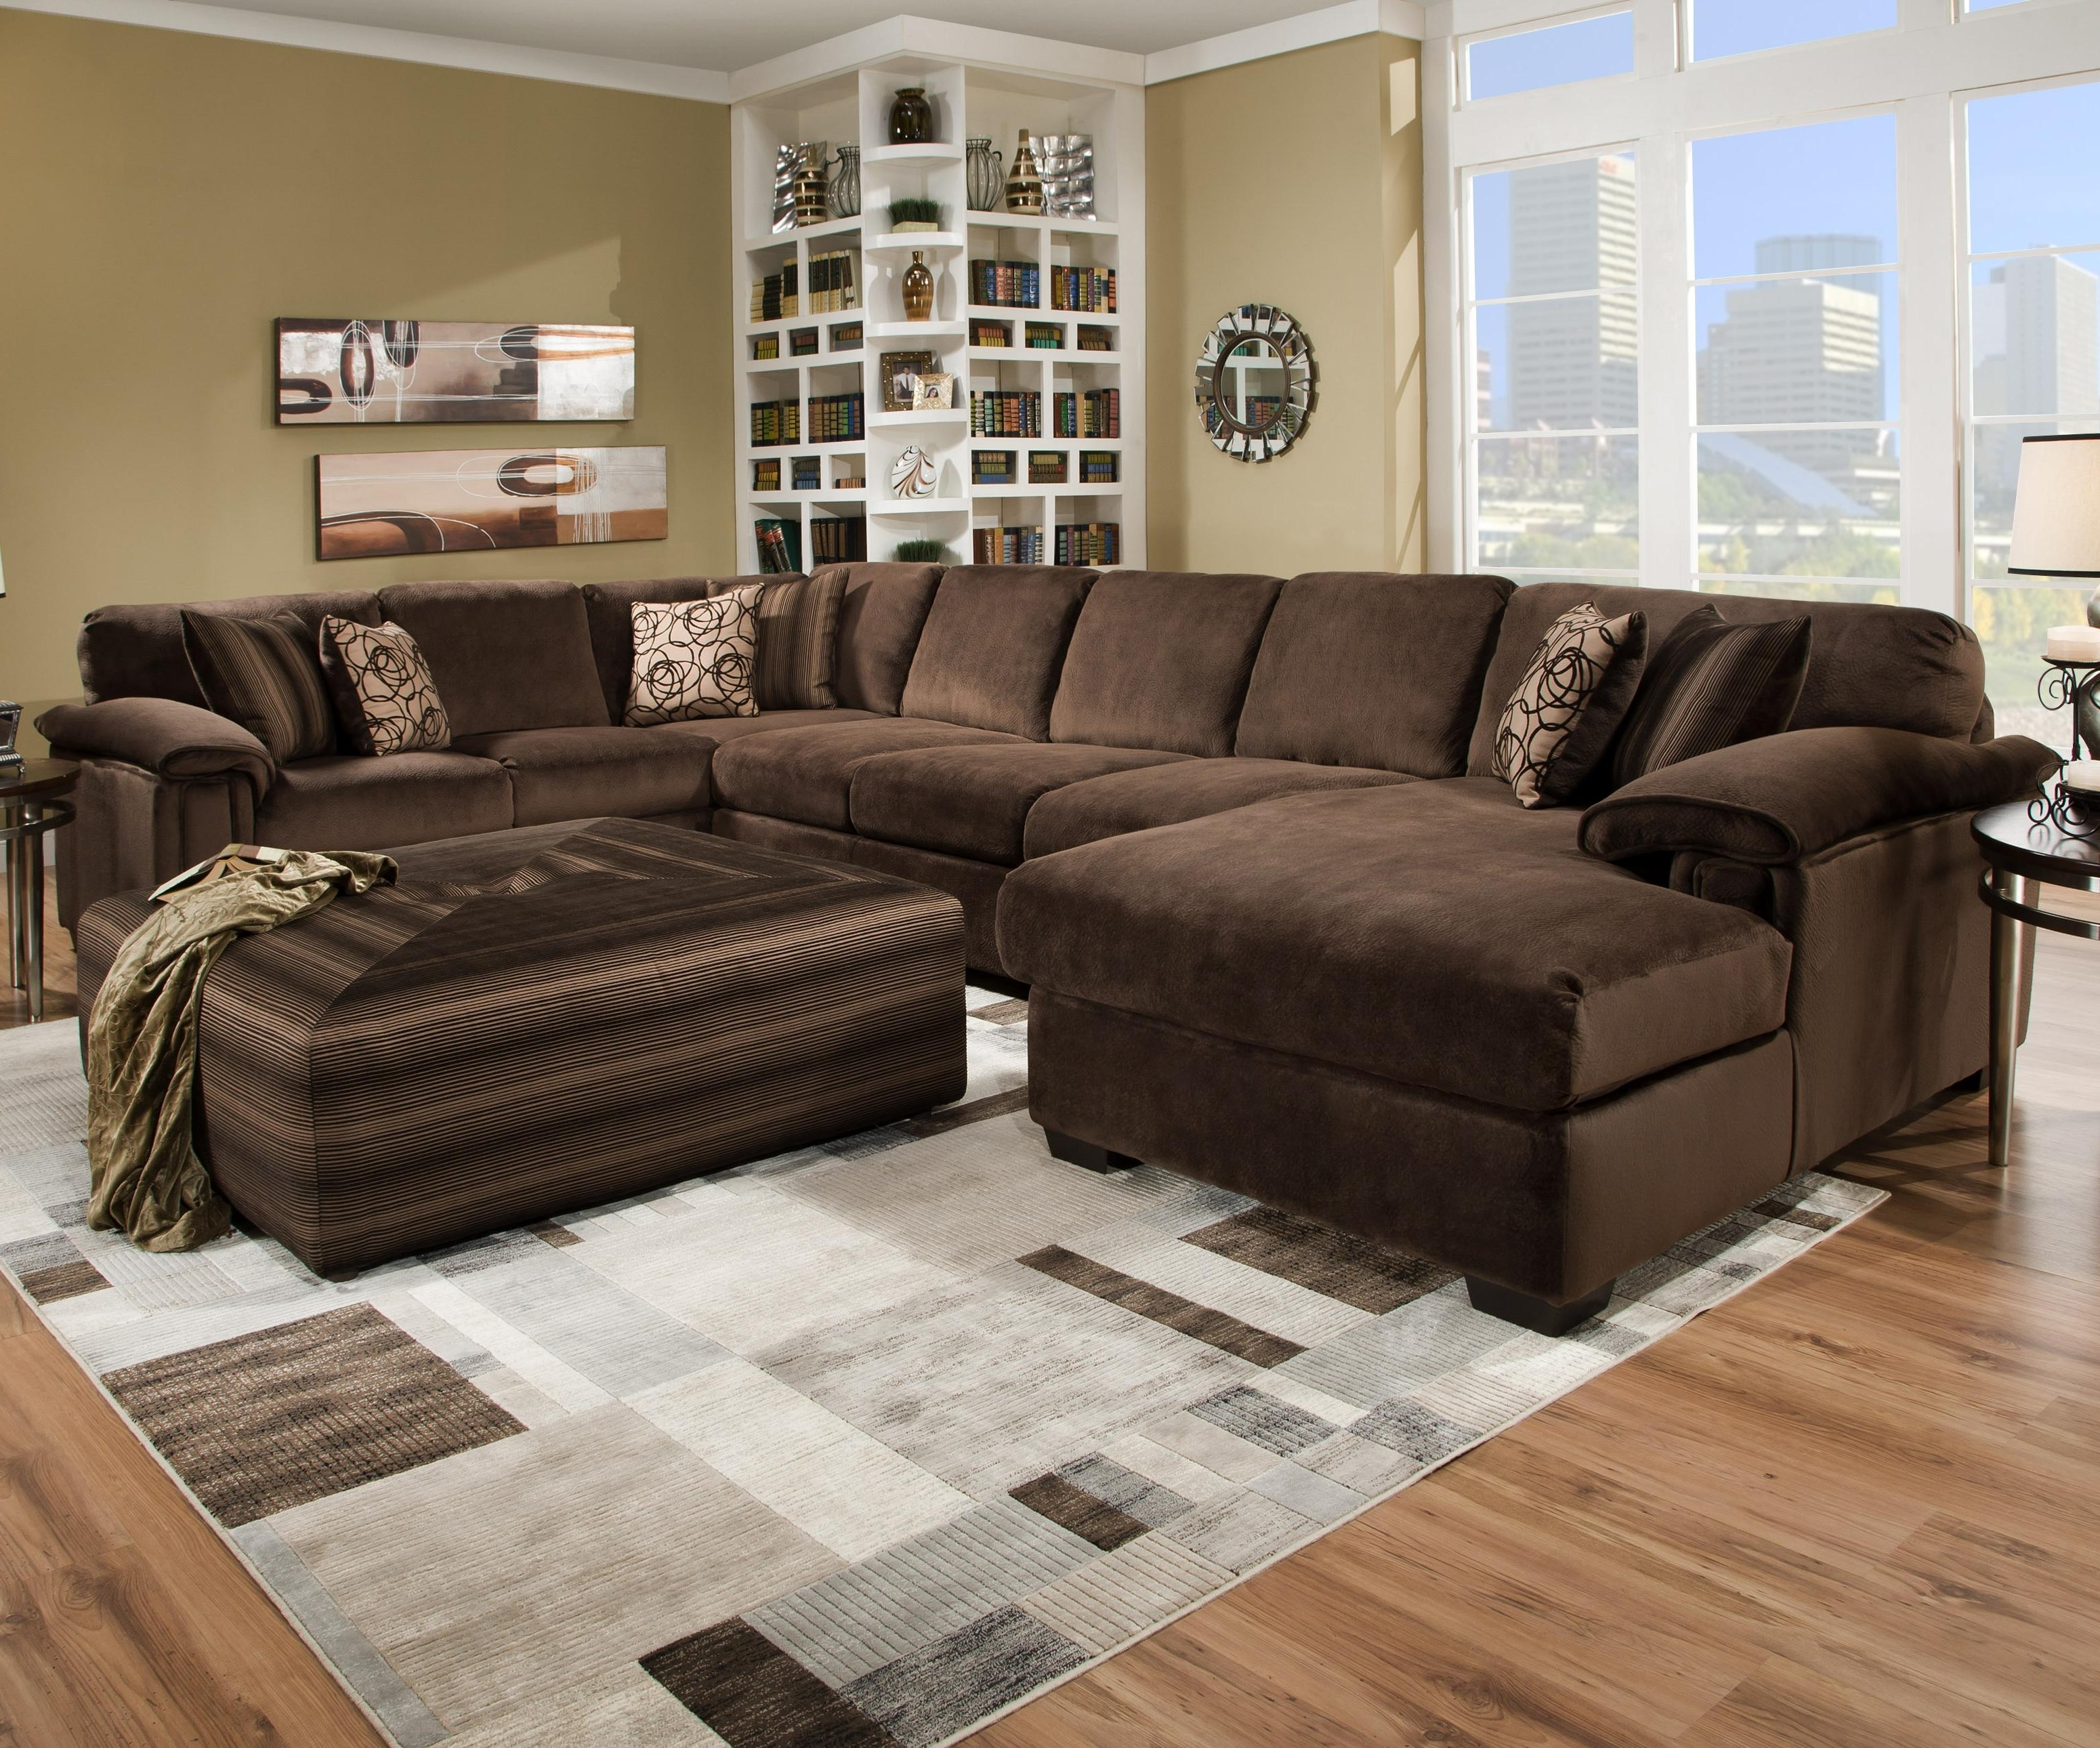 Preferred Oversized Sofa Chairs In Livingroom : Oversized Sofa Slipcovers Living Room Furniture Big (View 14 of 20)